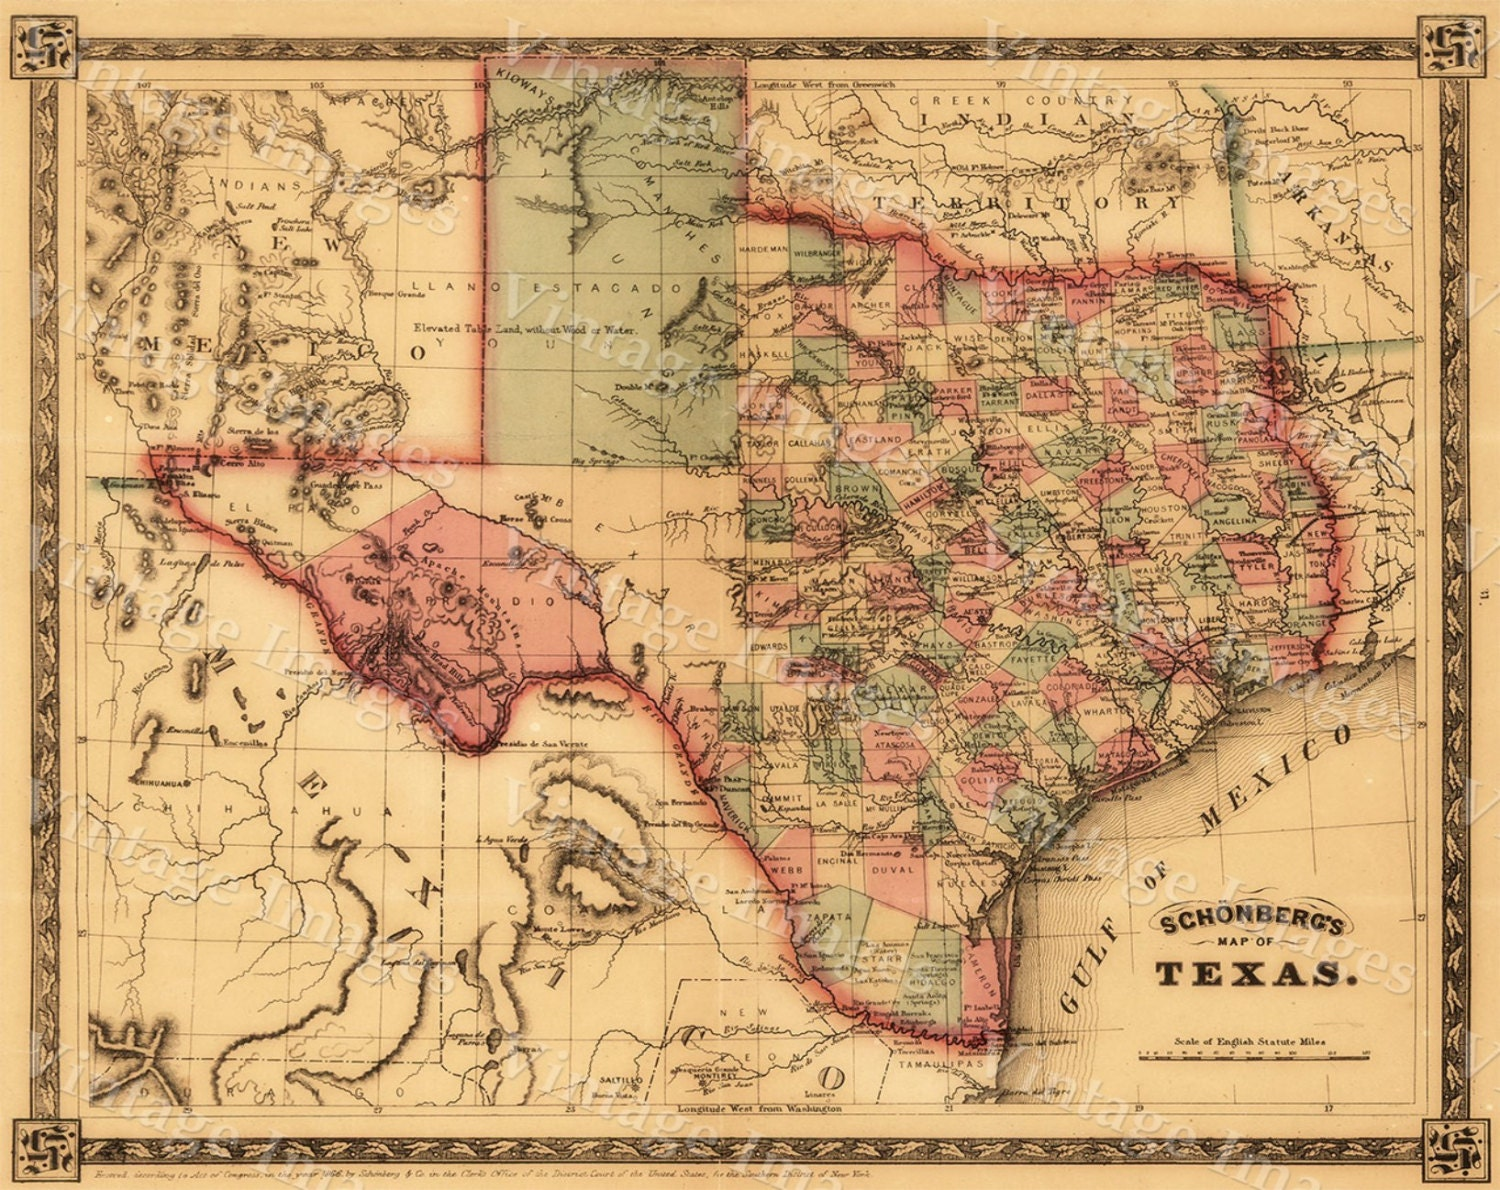 Giant 1866 Texas Old West Map Antique Restoration Hardware Style Wall Map Fine Art Print Poster